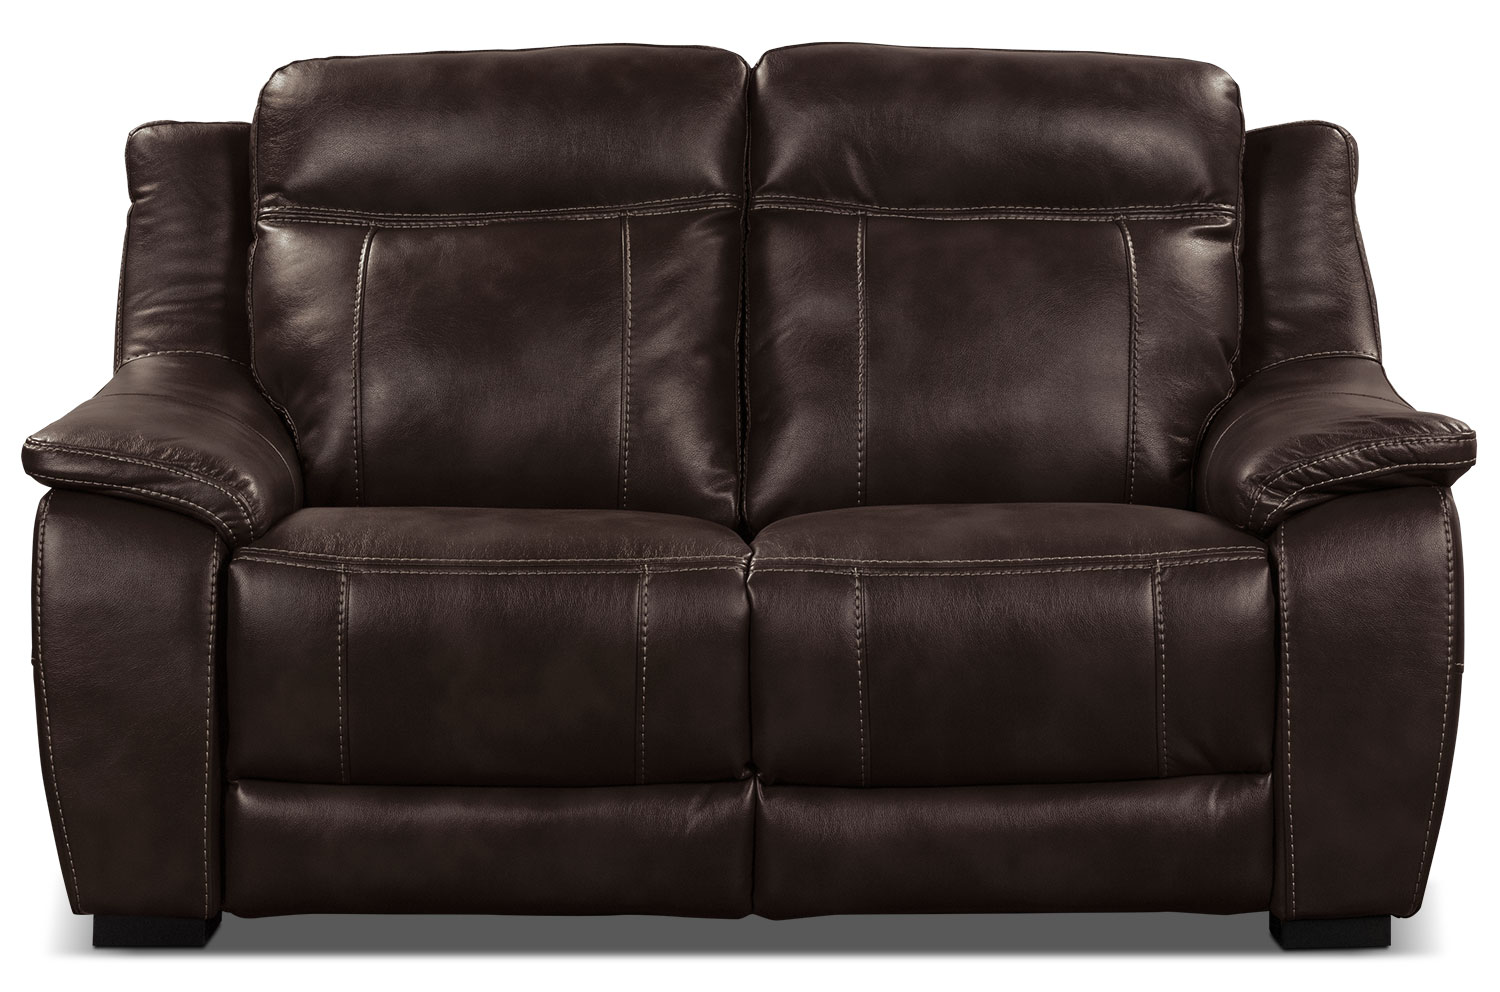 Novo Leather-Look Fabric Loveseat – Brown